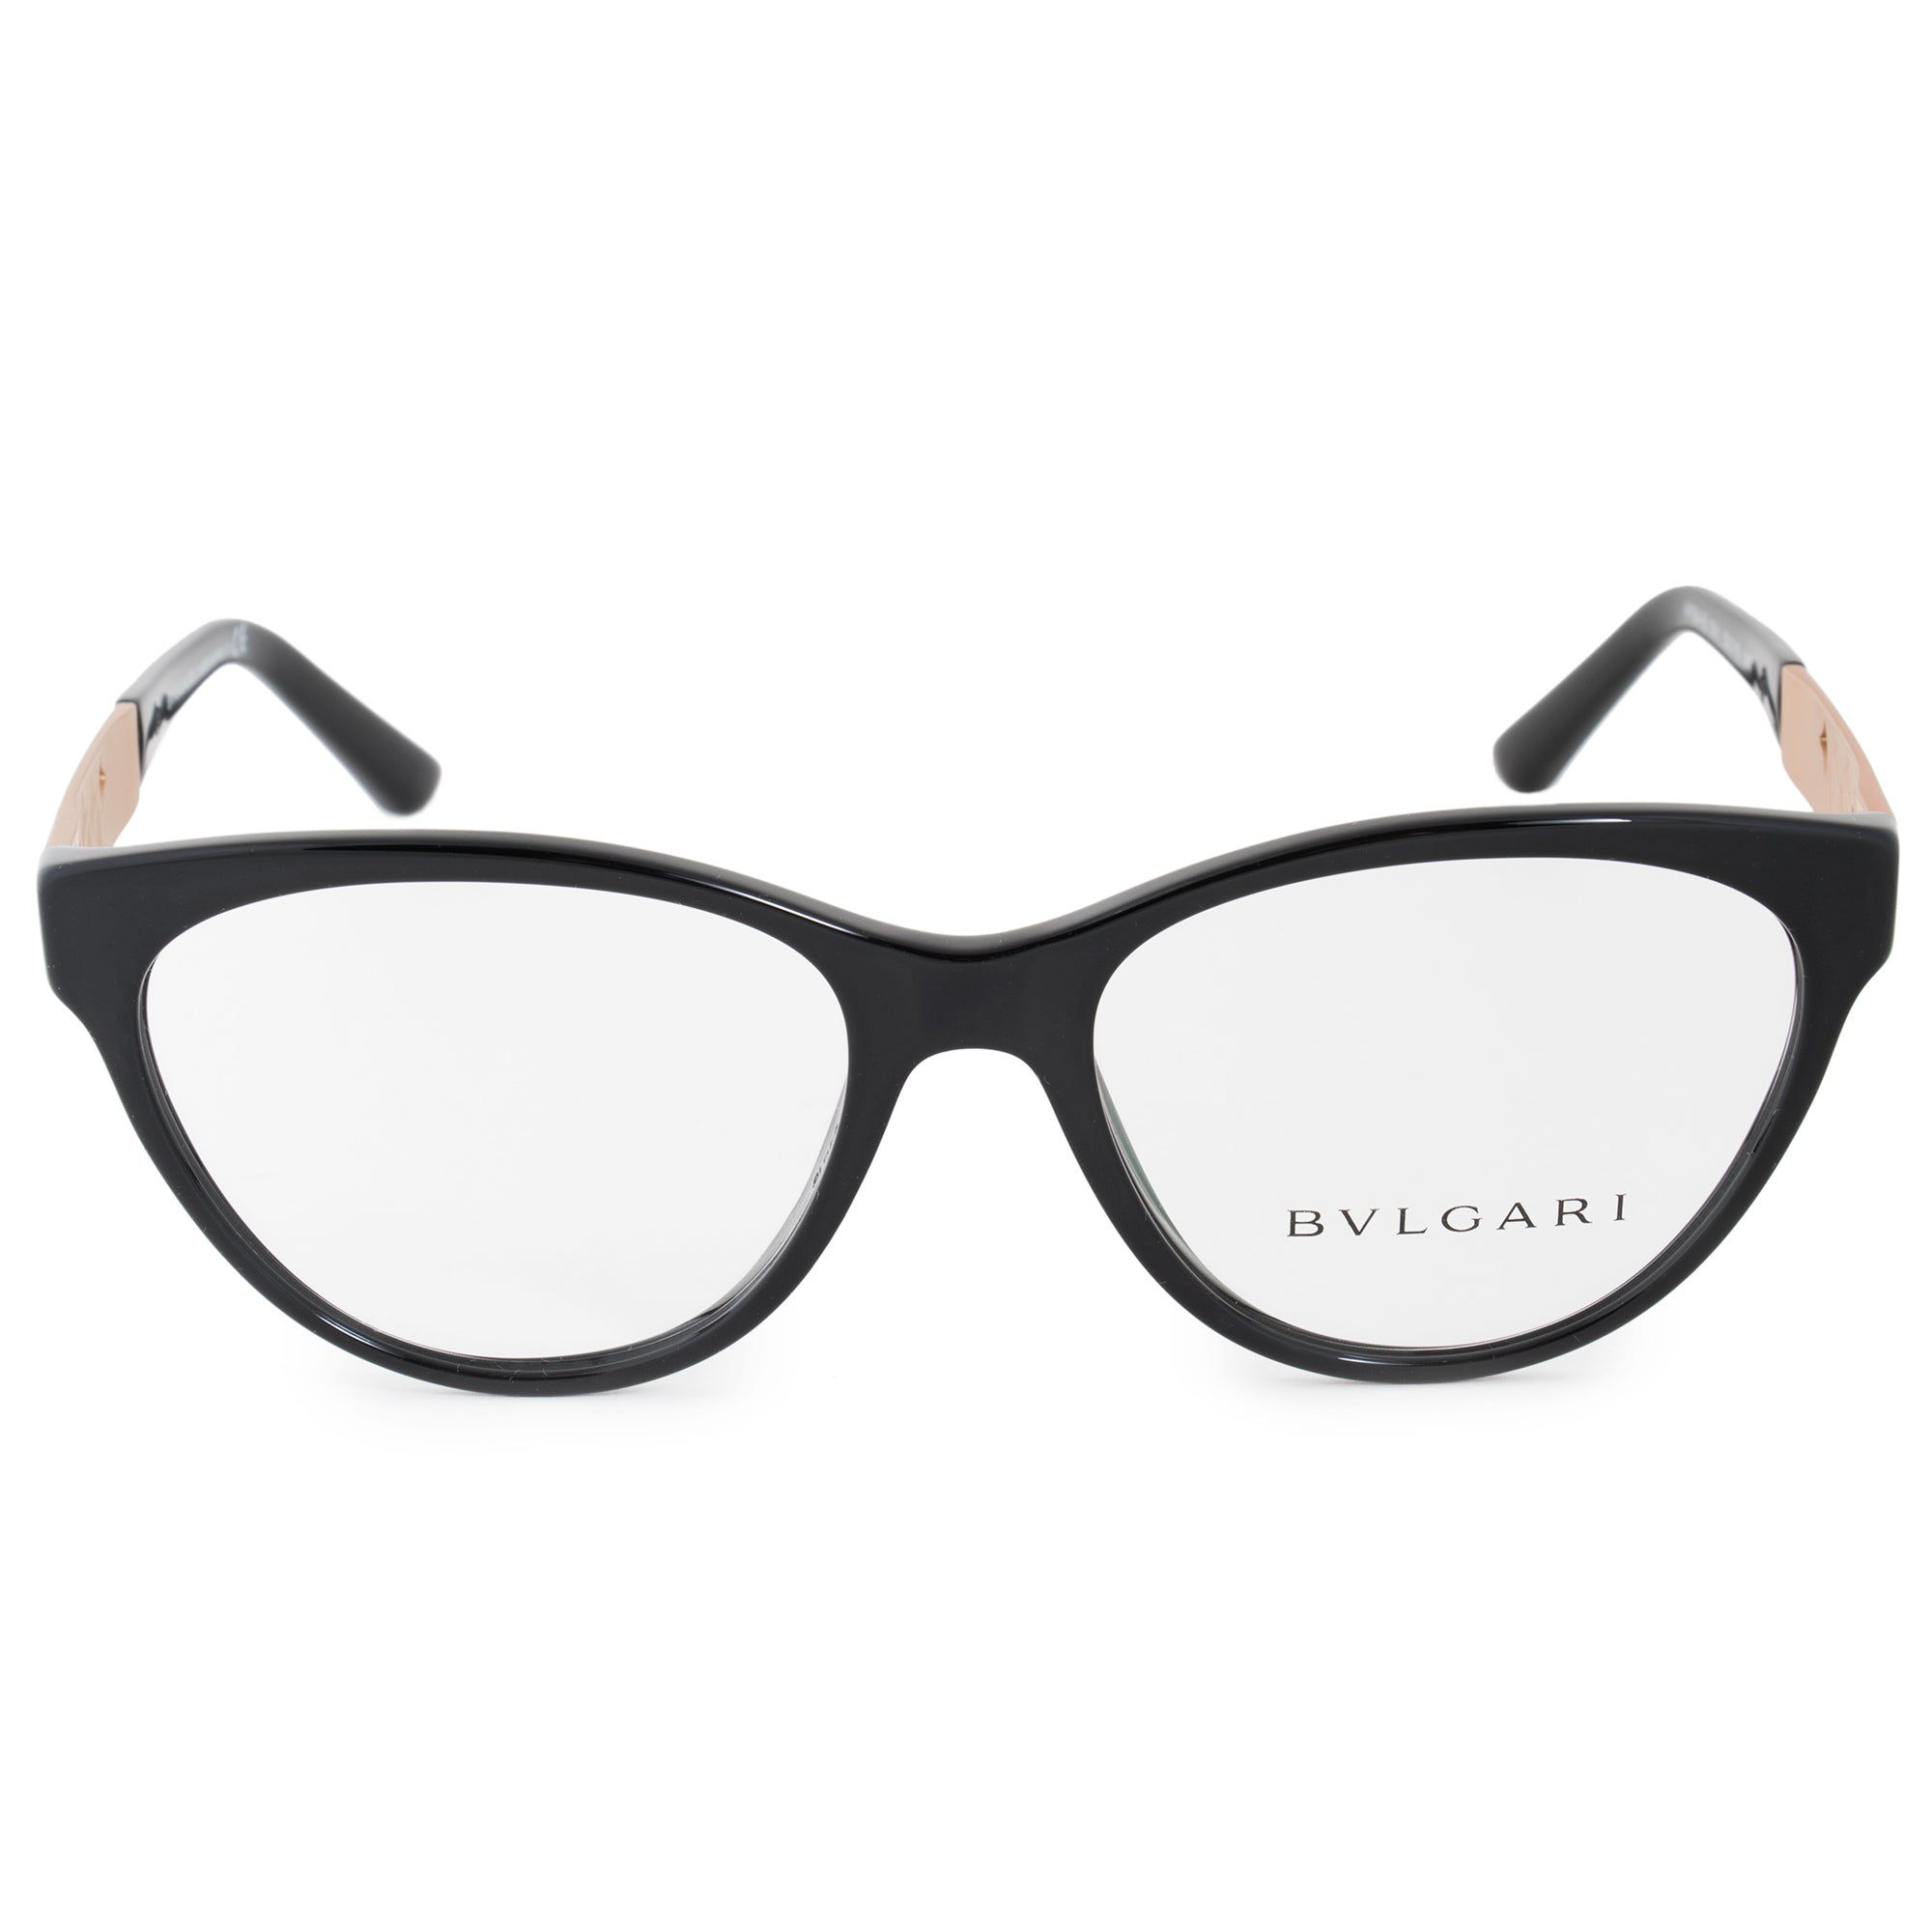 Bvlgari Bvlgari BV4154B 501 54 Divas' Dream Cat Eye Eyeglasses Frames